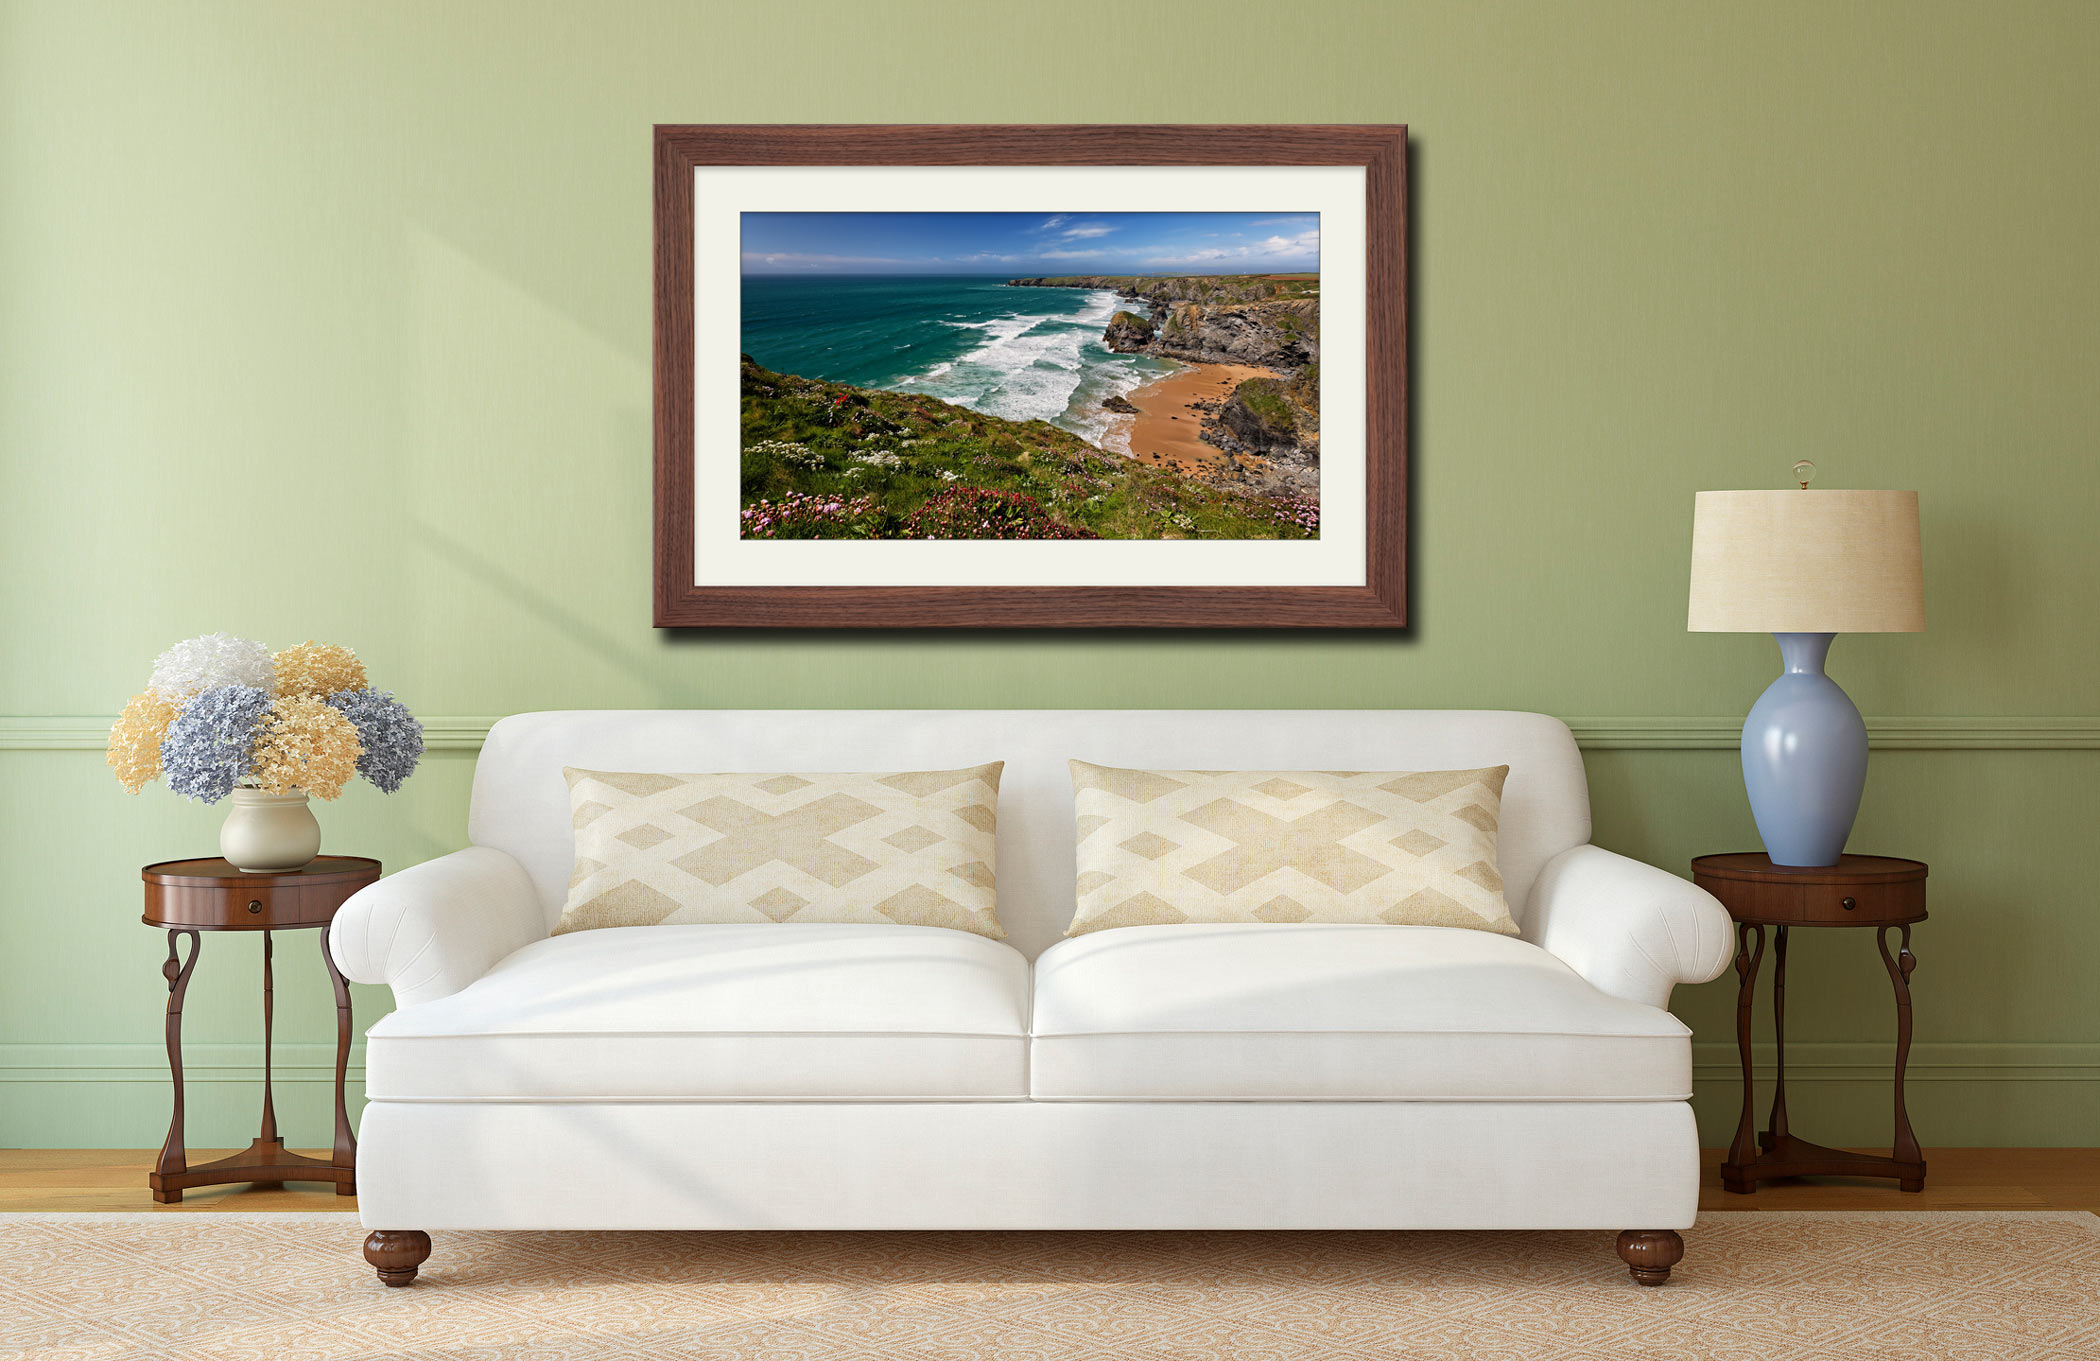 Wildflowers at Bedruthan Steps - Framed Print with Mount on Wall